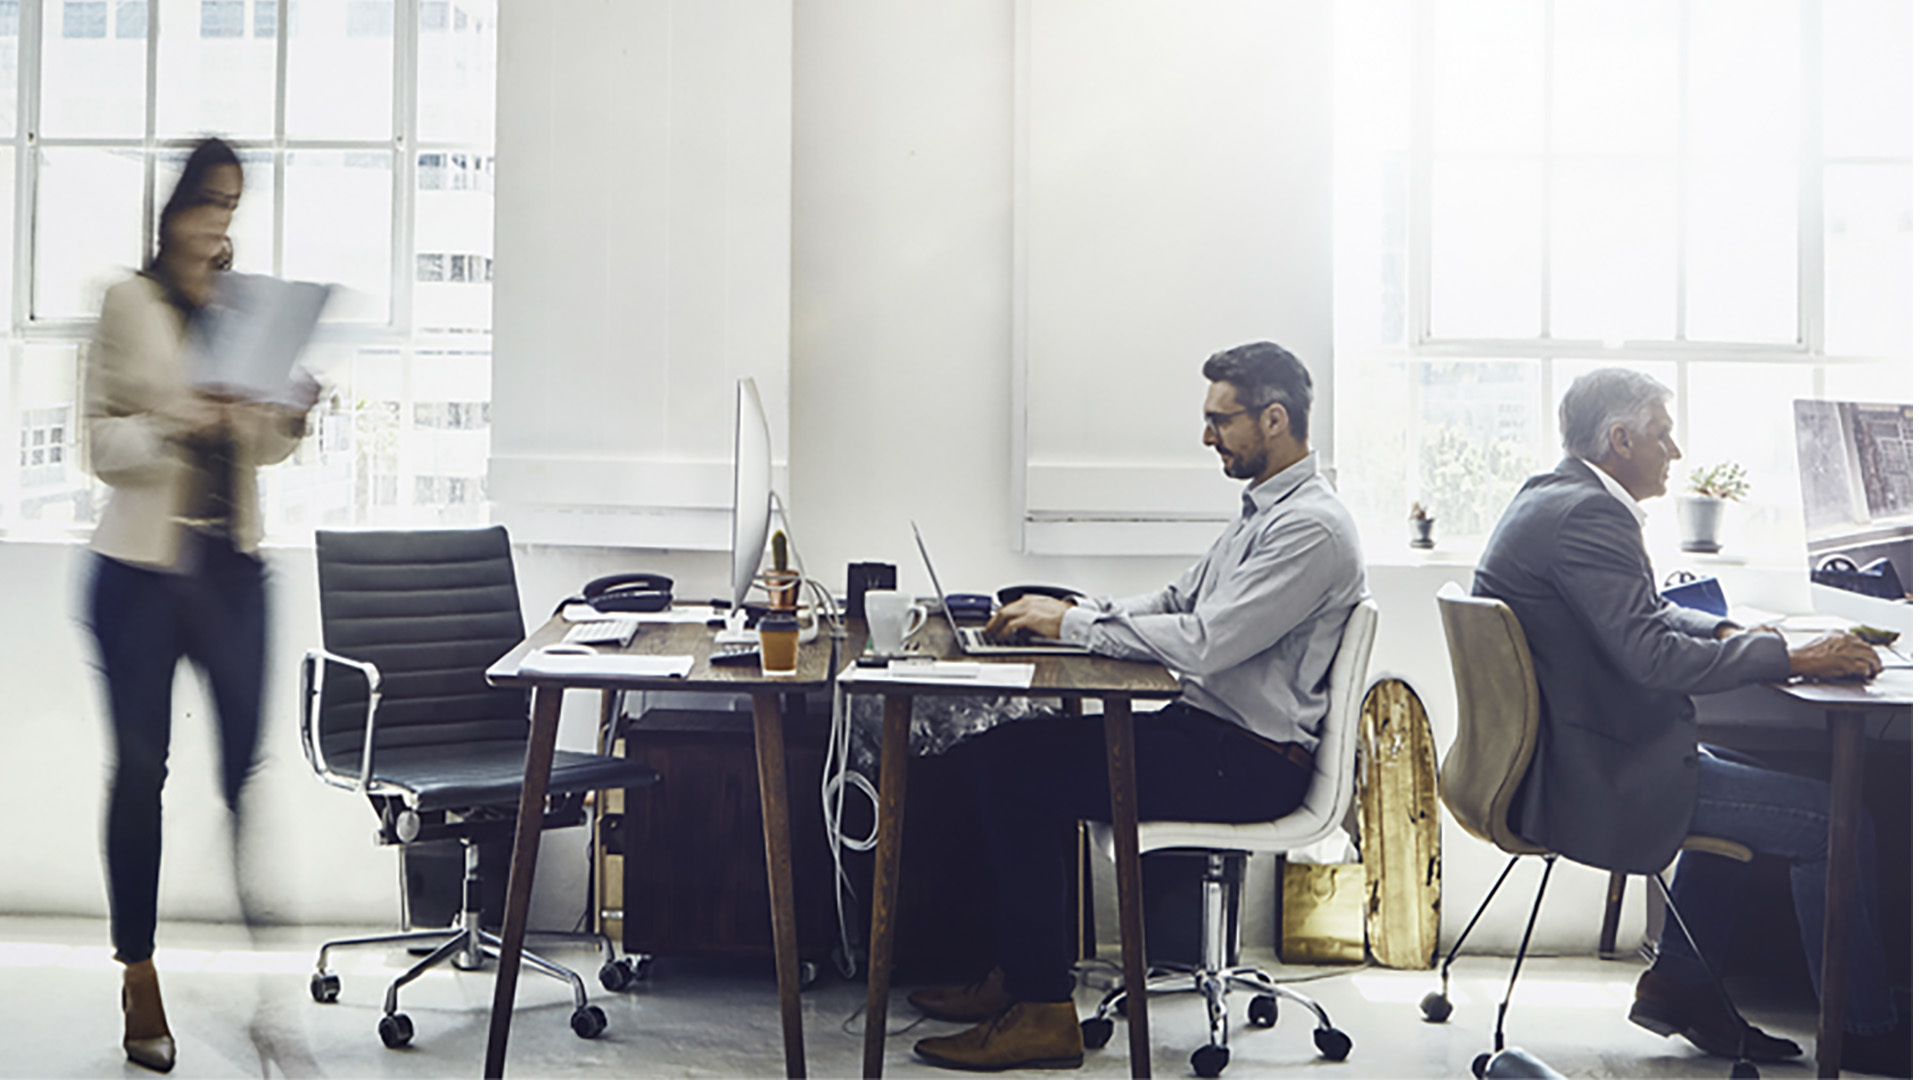 photo of three people working in modern office